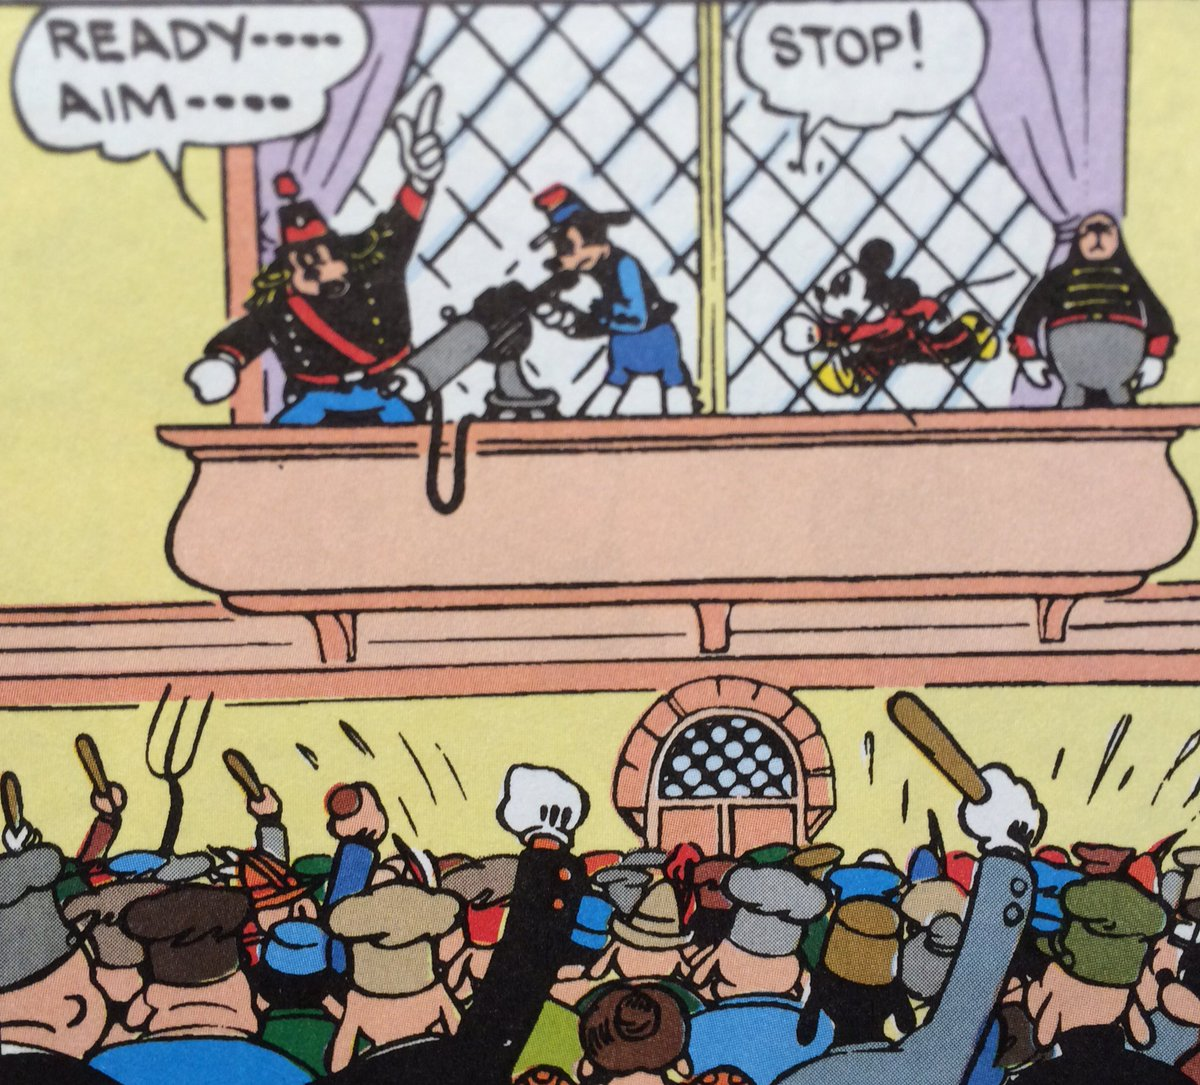 Whatever happened to the Mickey Mouse who jumped through a window to stop police from machine-gunning protesters https://t.co/Tj8su4iAe1